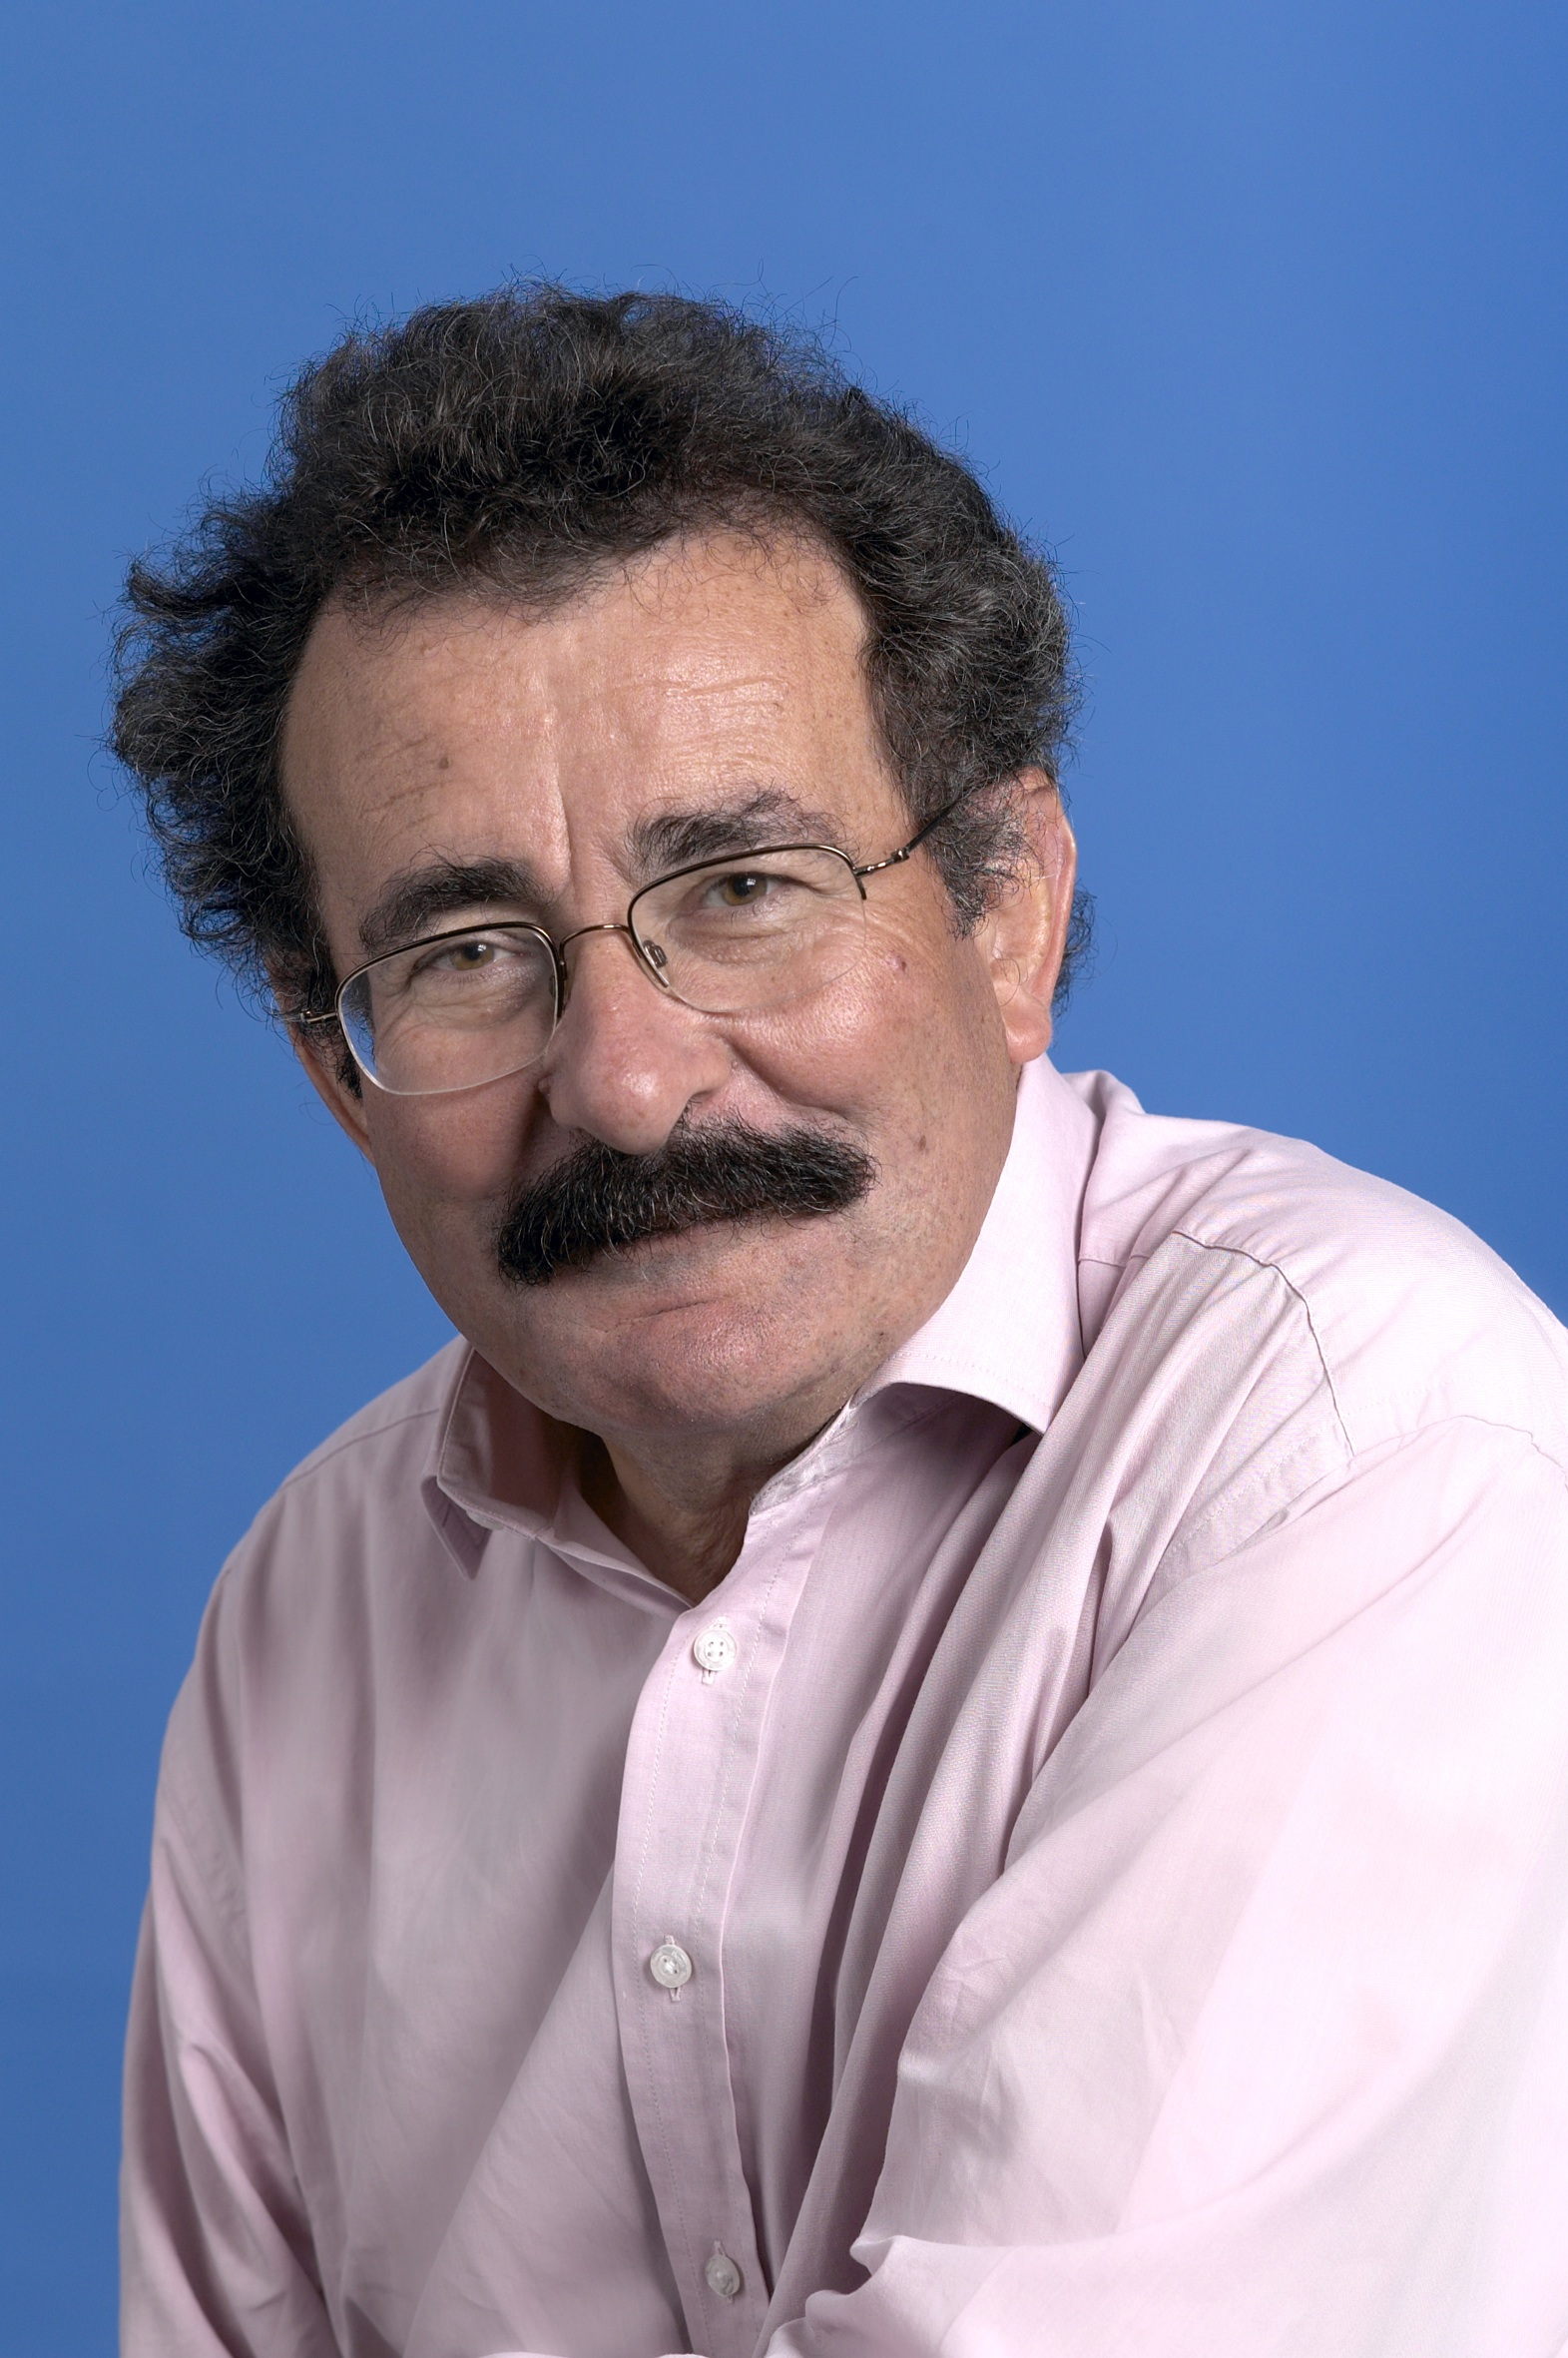 Professor Robert Winston: Modifying humans - where does genetics stop?